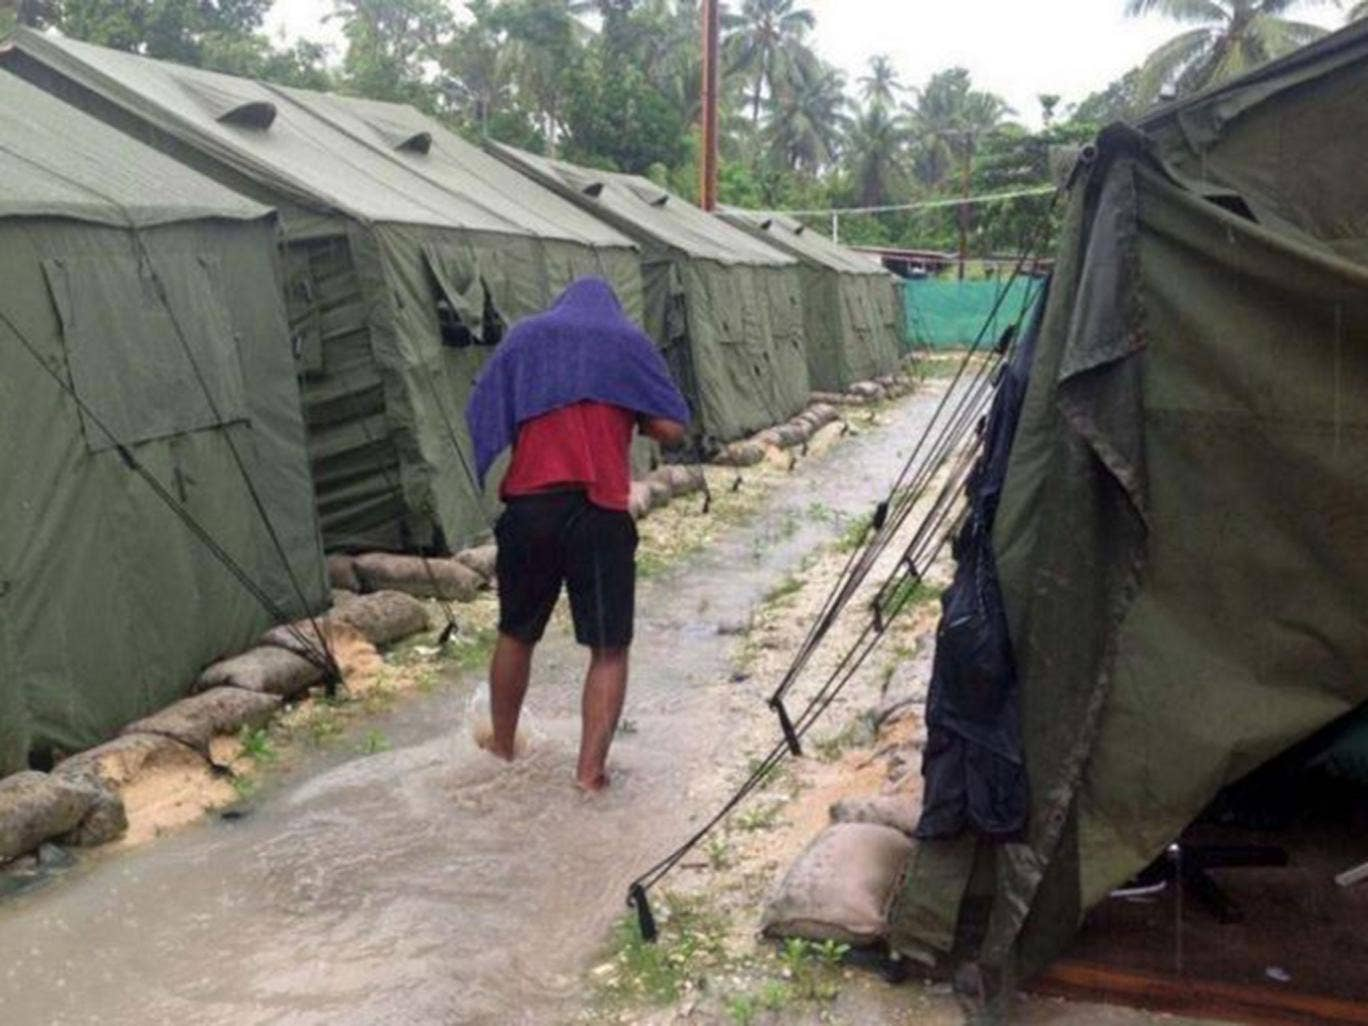 A man walks between tents at Australia's regional processing centre on Manus Island, where one inmate died in riots today